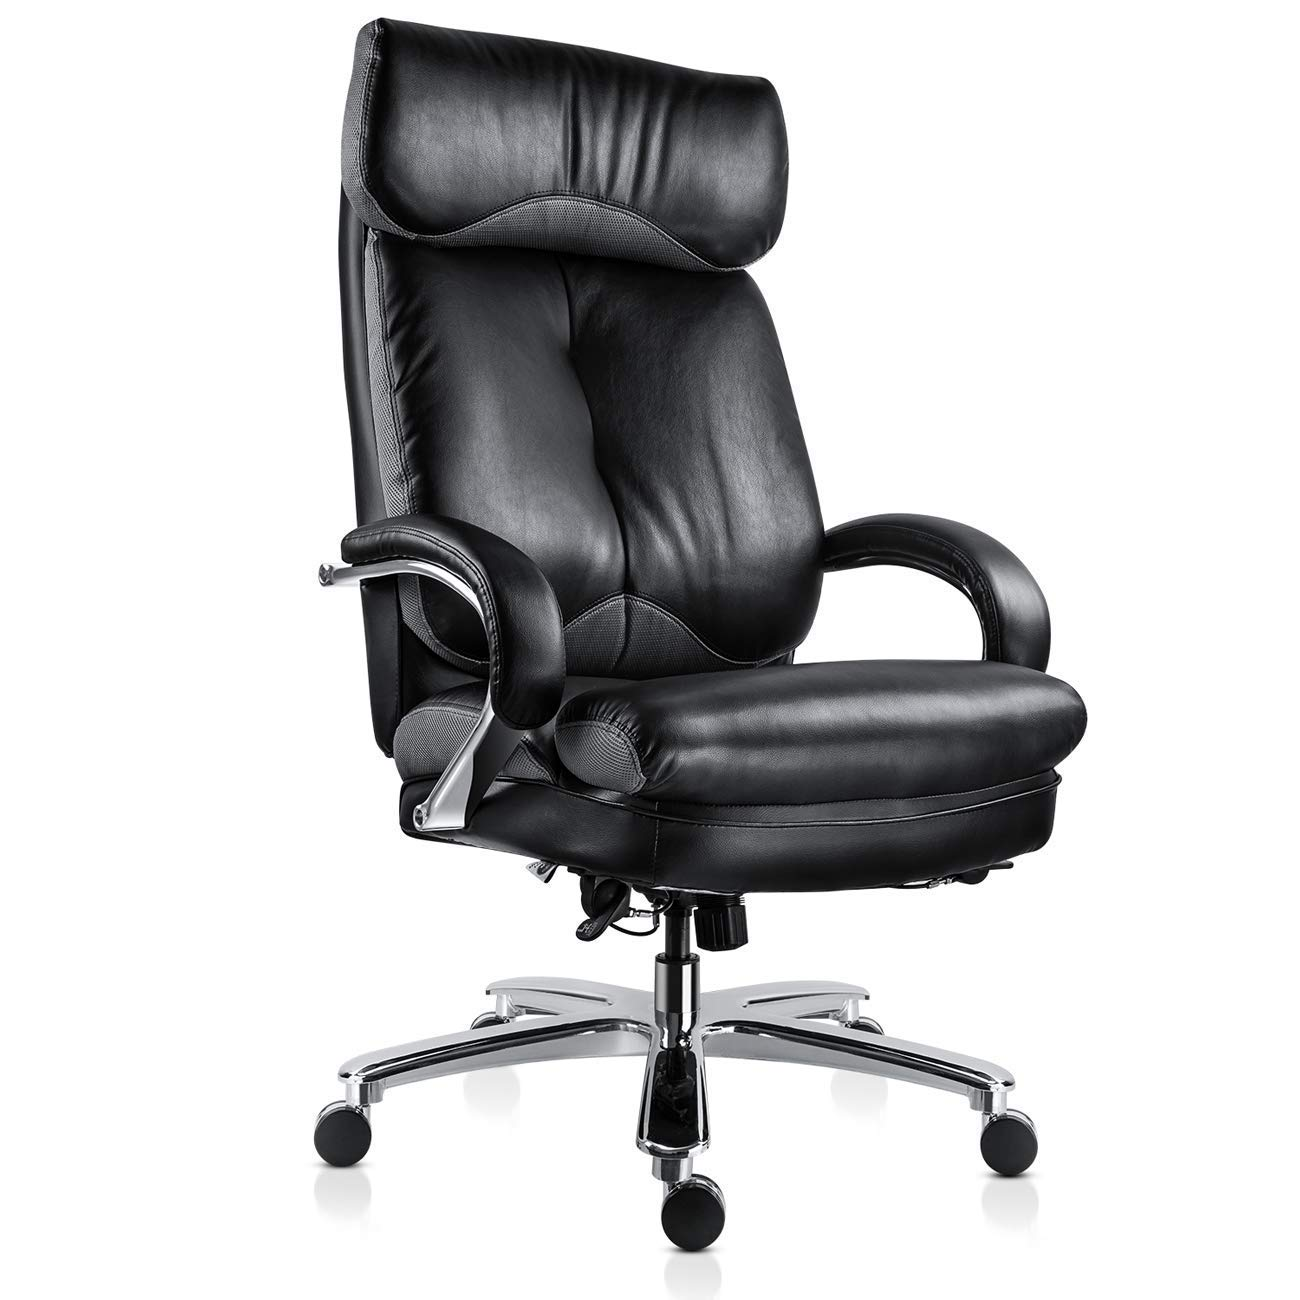 MDL Furniture Executive Office Chair Big and Tall 500lbs Ergonomic Home Office Chair Thick Padded Seat Heavy Duty Office Chair with Tilt Function, Black